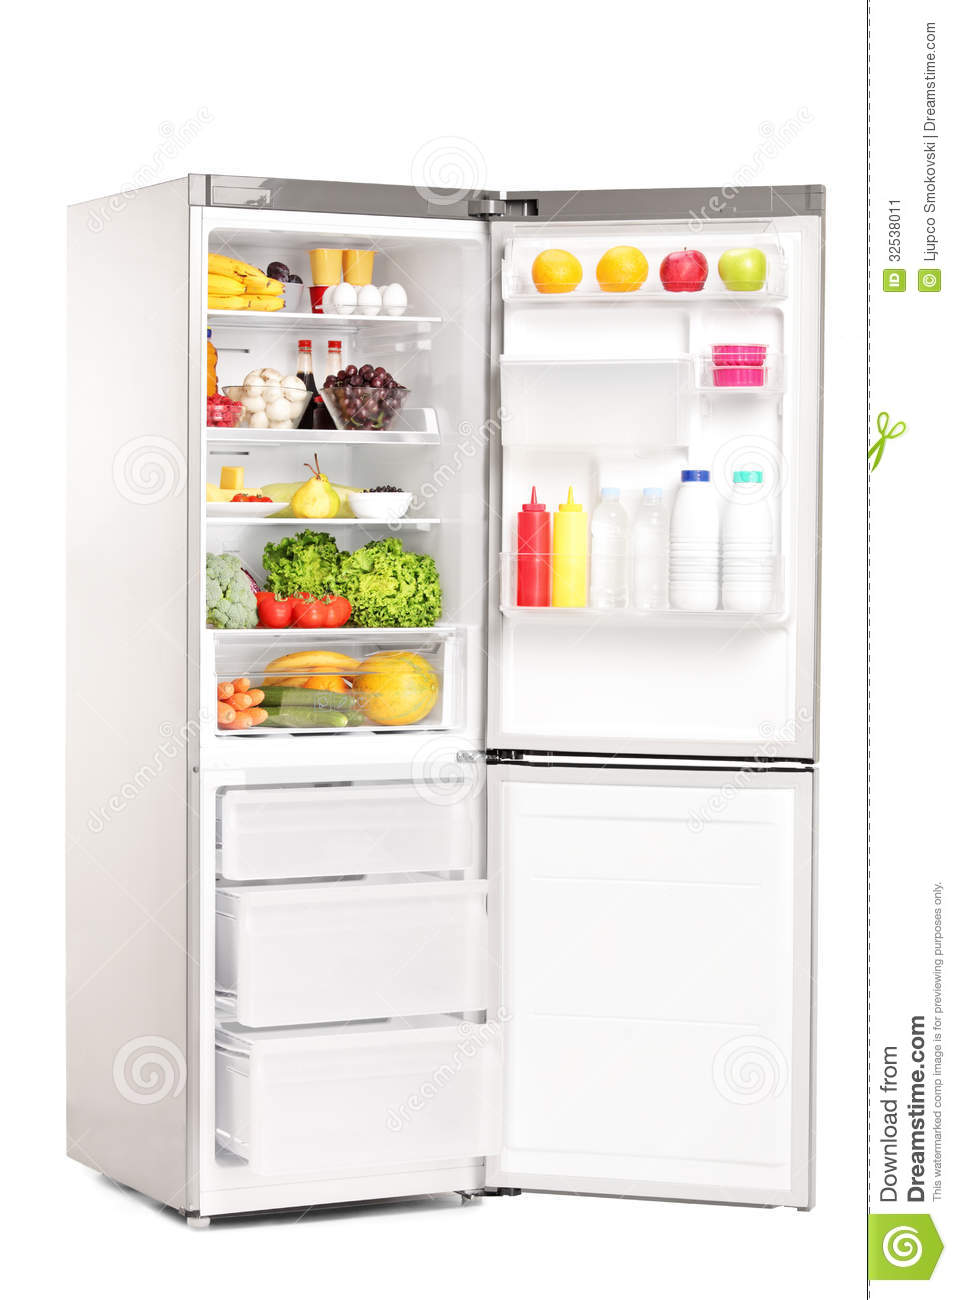 How To Stock Fridge With Healthy Food